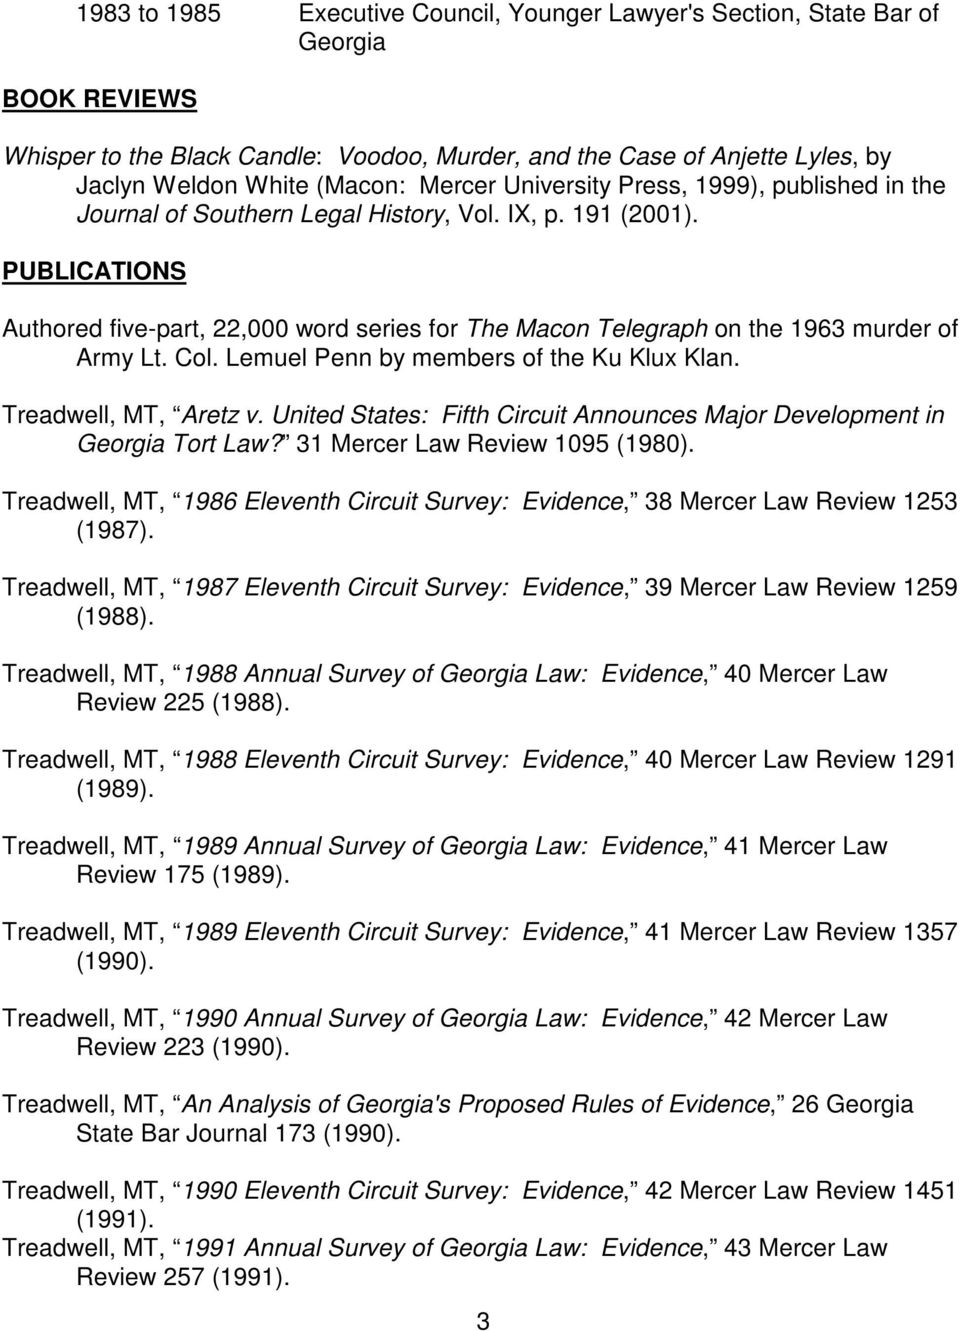 PUBLICATIONS Authored five-part, 22,000 word series for The Macon Telegraph on the 1963 murder of Army Lt. Col. Lemuel Penn by members of the Ku Klux Klan. Treadwell, MT, Aretz v.